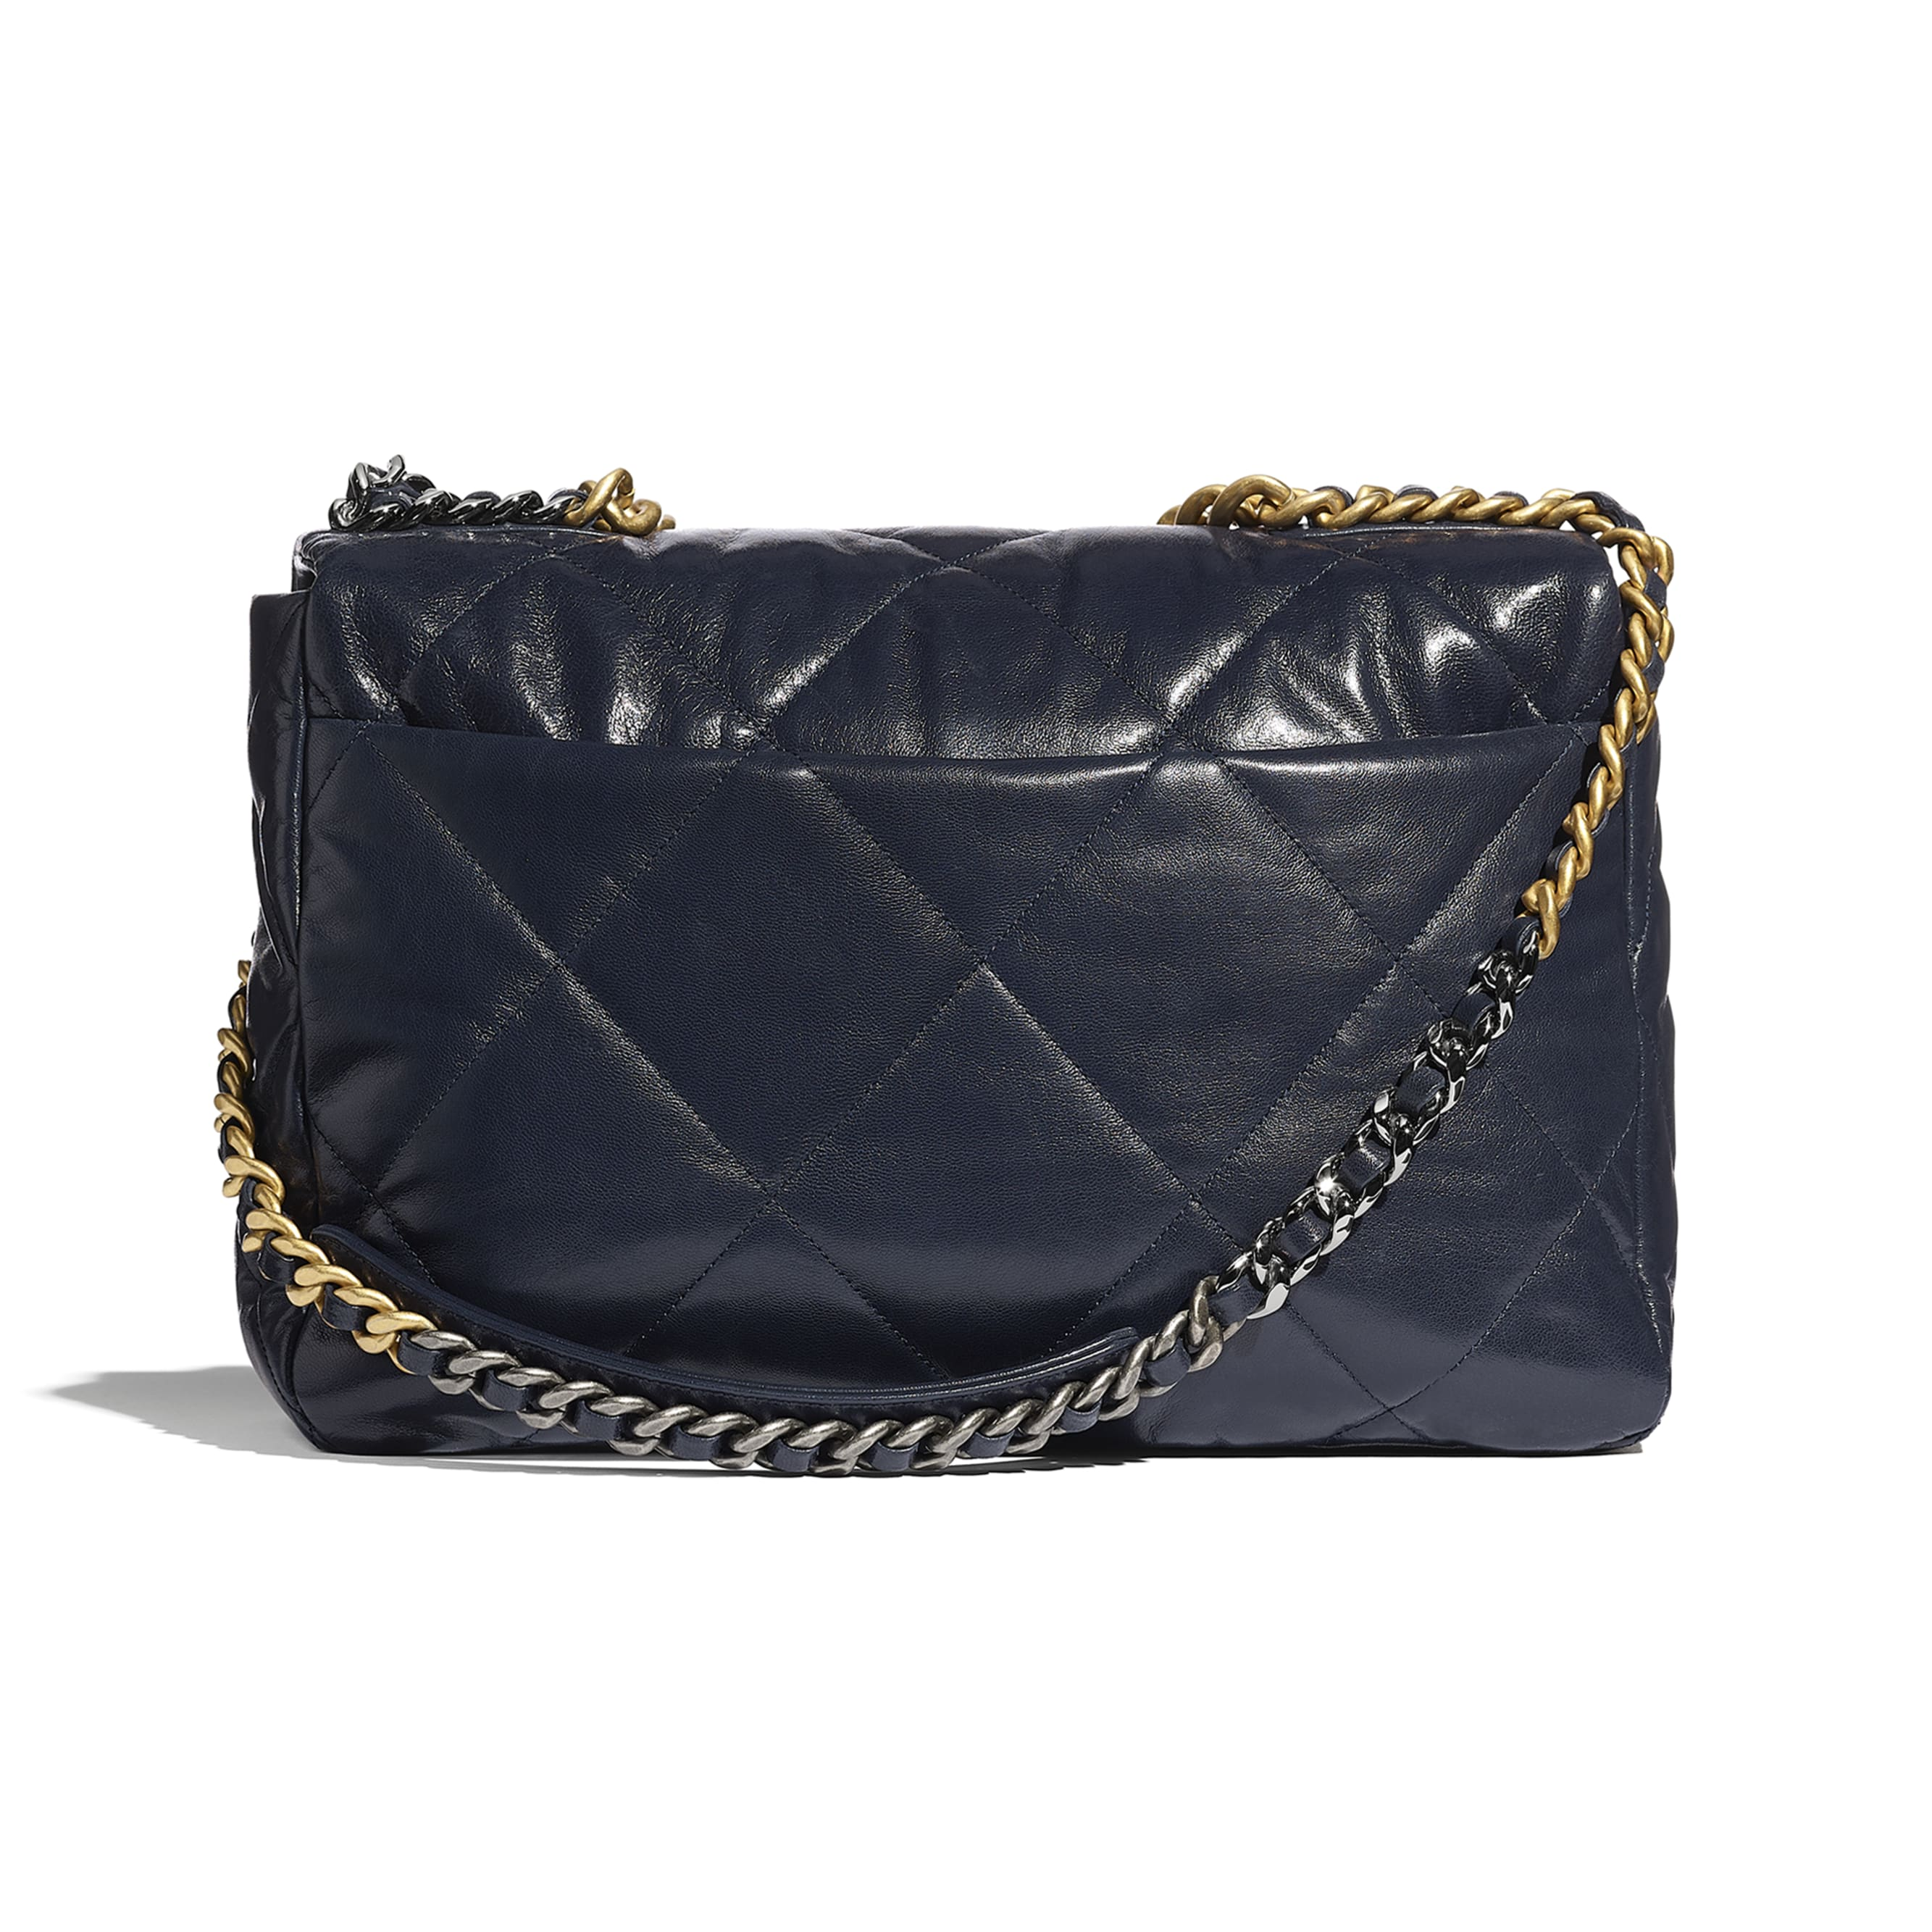 CHANEL 19 Maxi Flap Bag - Navy Blue - Goatskin, Gold-Tone, Silver-Tone & Ruthenium-Finish Metal - CHANEL - Alternative view - see standard sized version